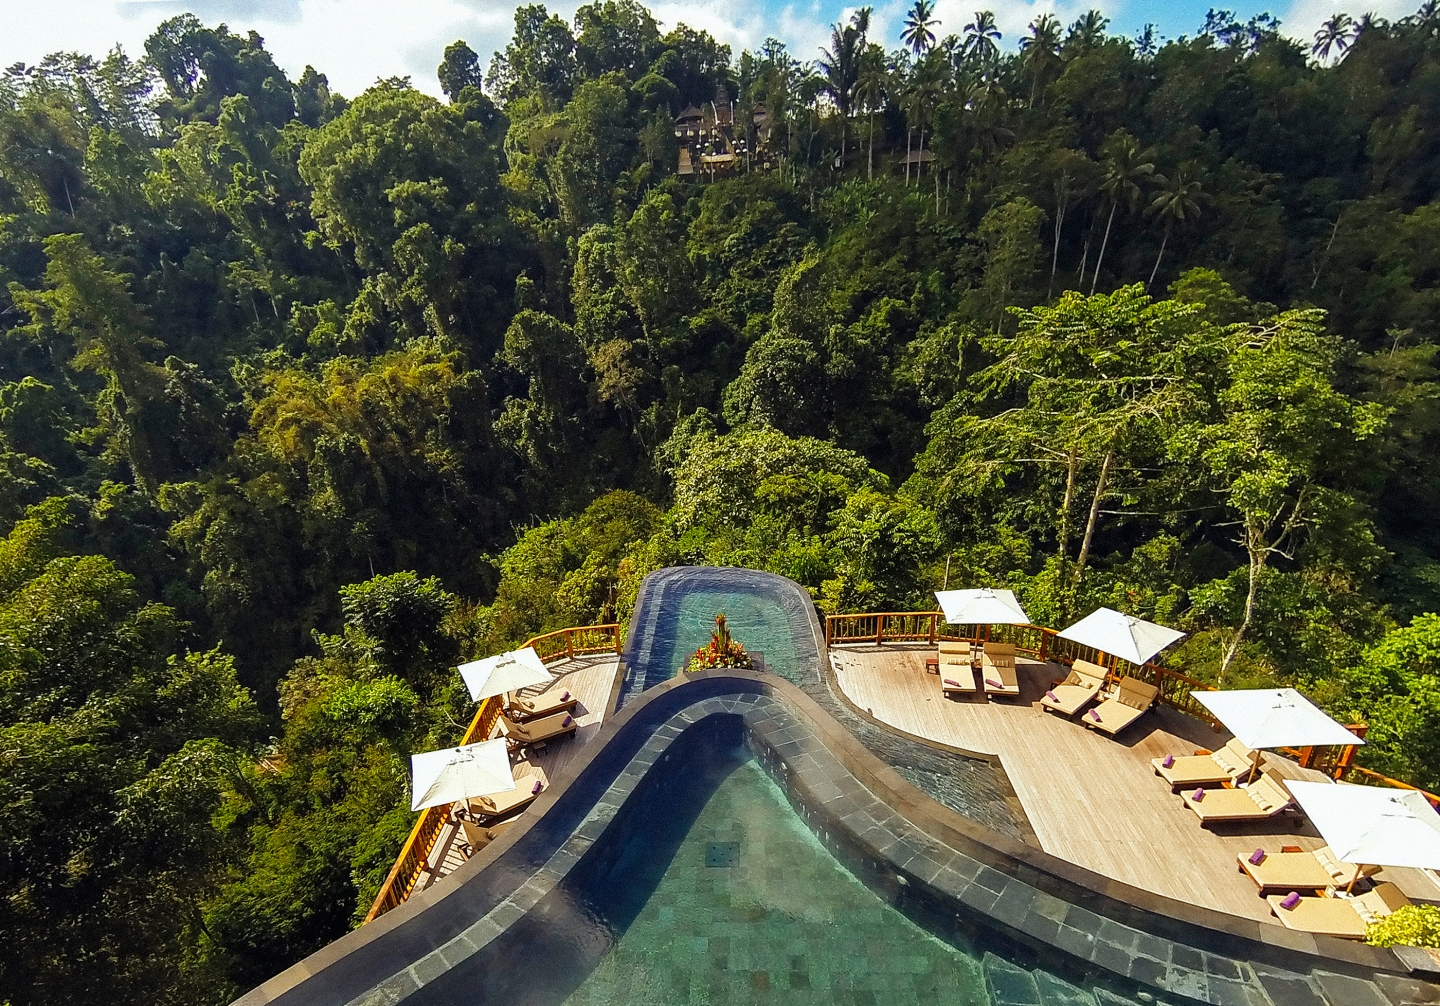 hg-pool-high-res-jungle-view_new-copy